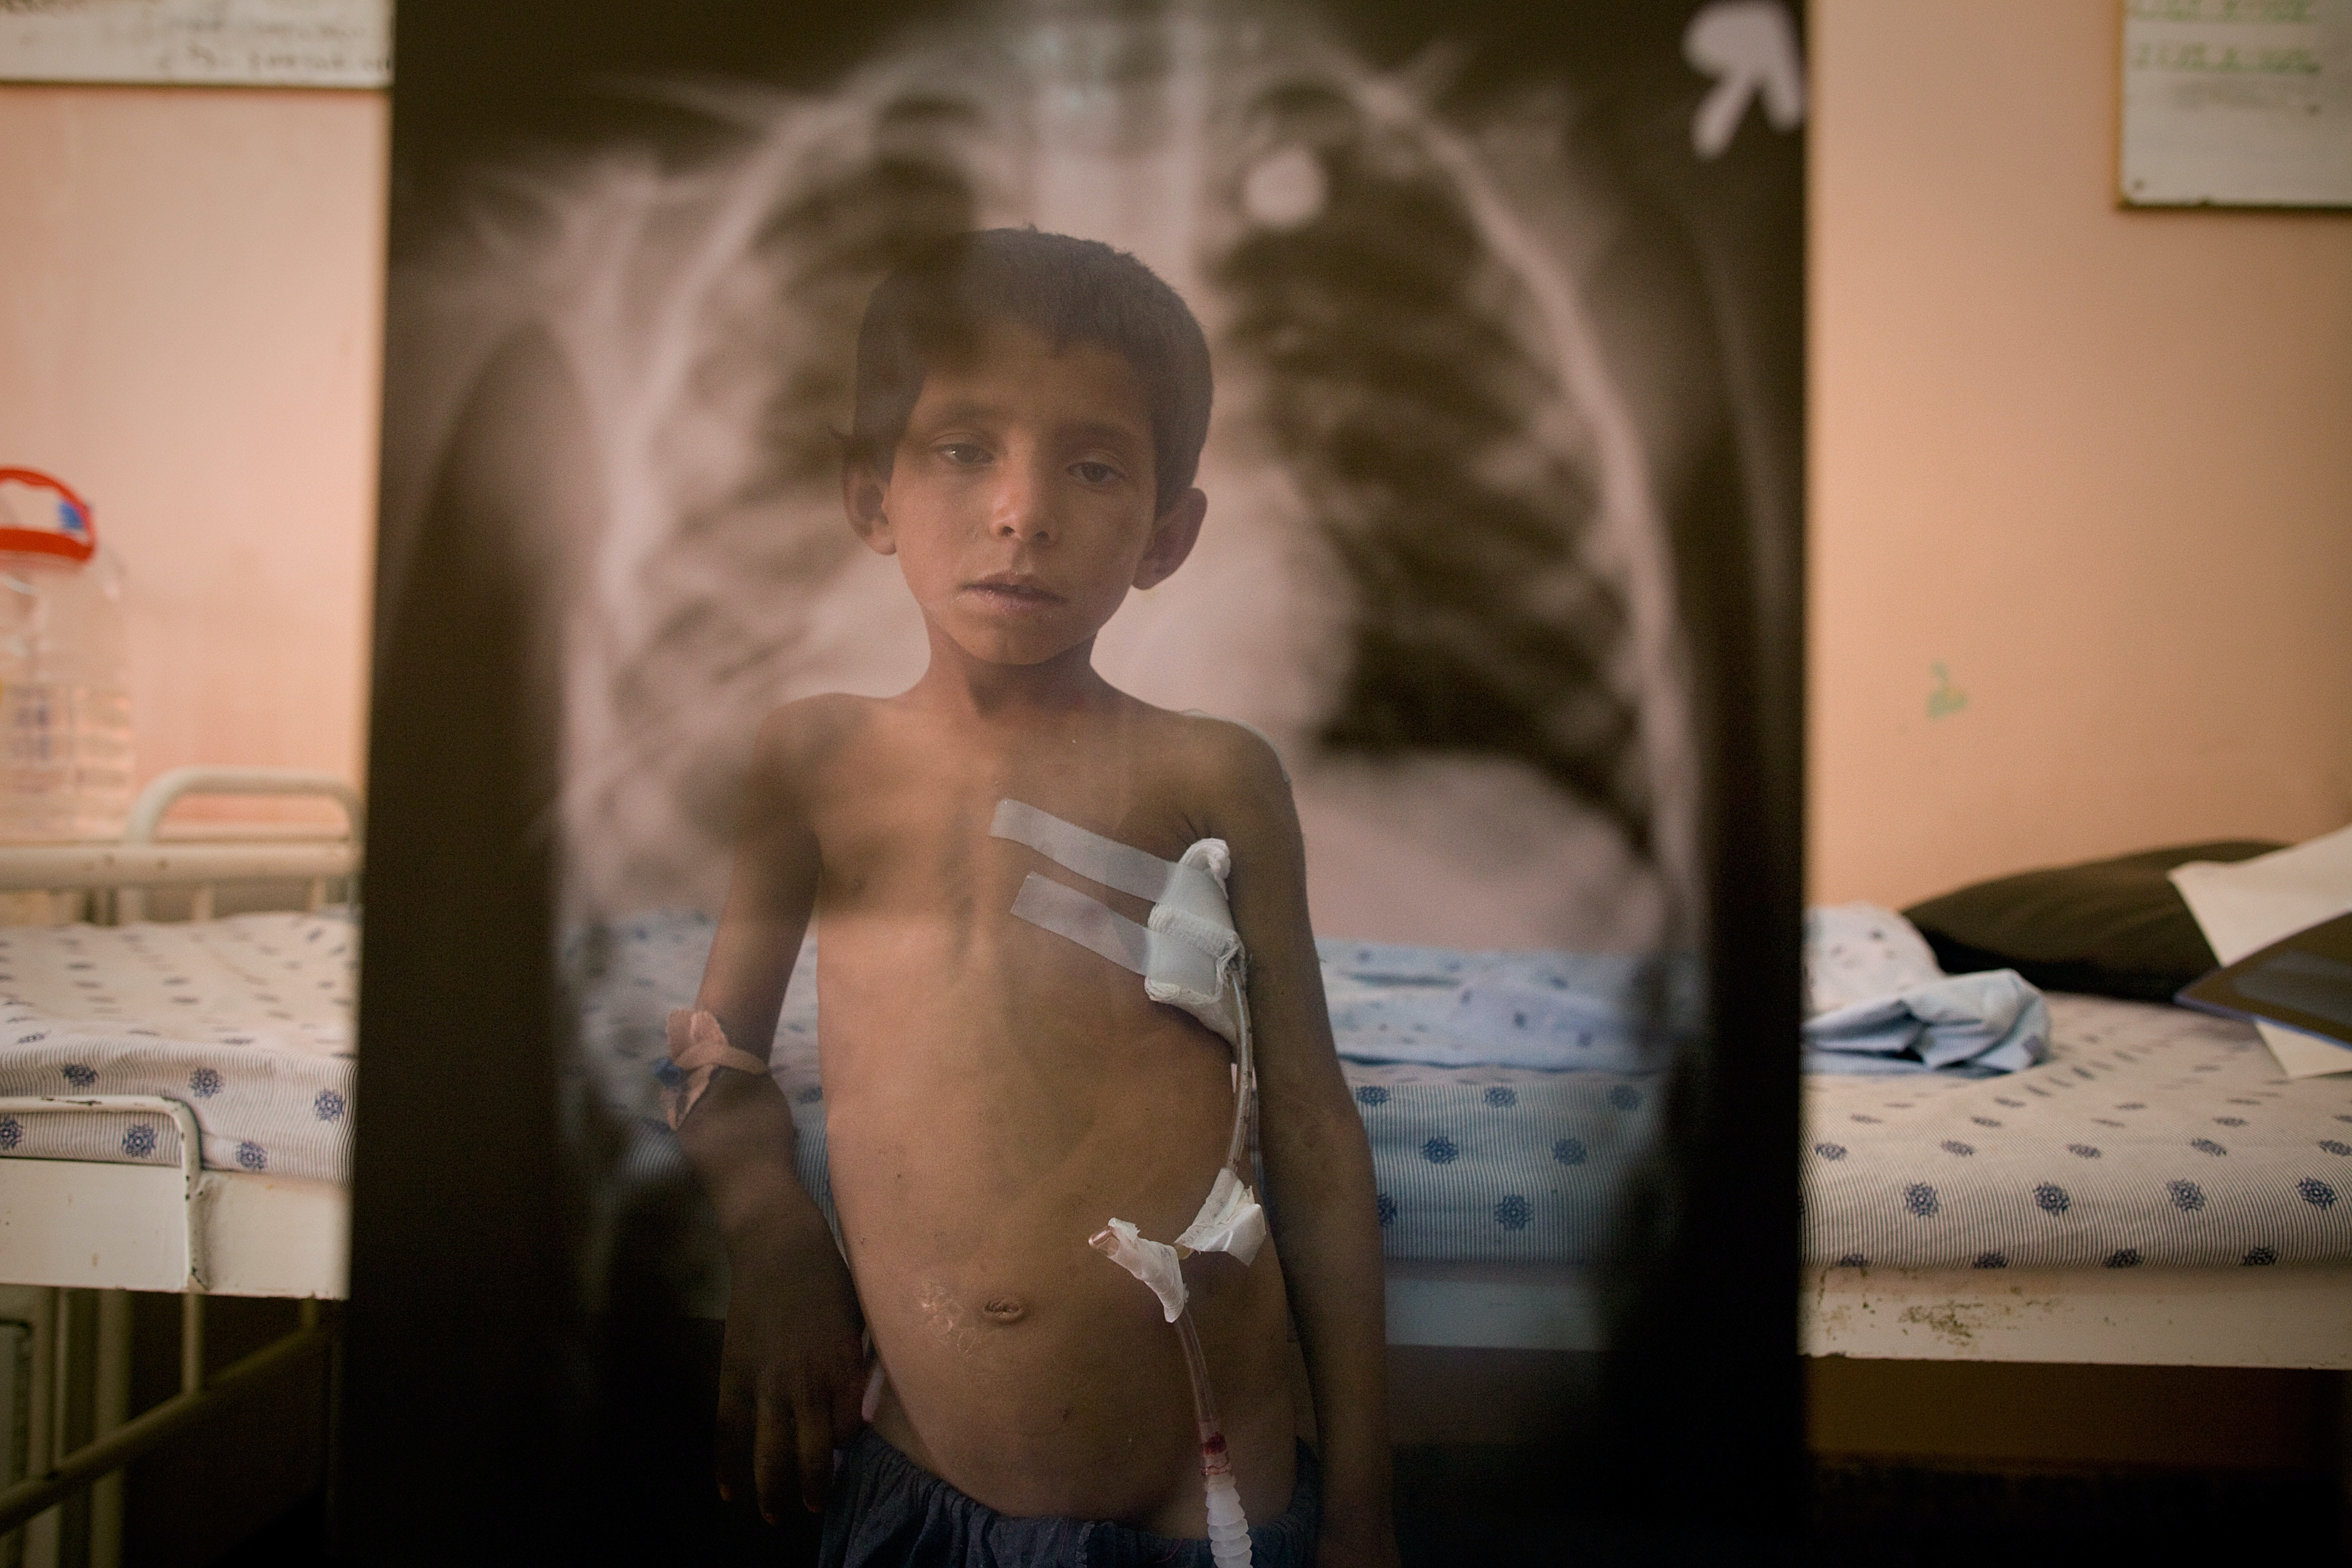 KANDAHAR, AFGHANISTAN - OCTOBER 13: Seven-year-old Attiullah poses in front of an x-ray of the bullet that entered his back coming out through his chest, as he stands by his bed at Mirwais hospital October 13, 2009 Kandahar, Afghanistan. According to his grandfather, Attiullah was shot by U.S forces as he was walking in the field near his home in the village of Sangissar, Panjway district watching the family's flock of sheep. The soldiers apparently shot at a vehicle that was supposedly Taliban and the boy got hit accidently. Mirwais hospital in Kandahar city is the largest regional hospital in the area, supported by the ICRC and the Afghan government it caters to most of the war wounded in the most hostile part of the country. A recent U.N. report has described 2009 as the deadliest year in terms of civilian casualties in Afghanistan ever since the start of the U.S.-led war against Taliban in the country. In his latest report presented to the Pentagon, Gen. Stanley McChrystal, the U.S. top commander emphasized the need for winning the hearts and minds of the Afghans. The Taliban are now staging suicide attacks and IED blasts in densely populated areas to create a bigger impact as more of Afghan's war wounded hit the headlines. (Photo by Paula Bronstein/Getty Images)